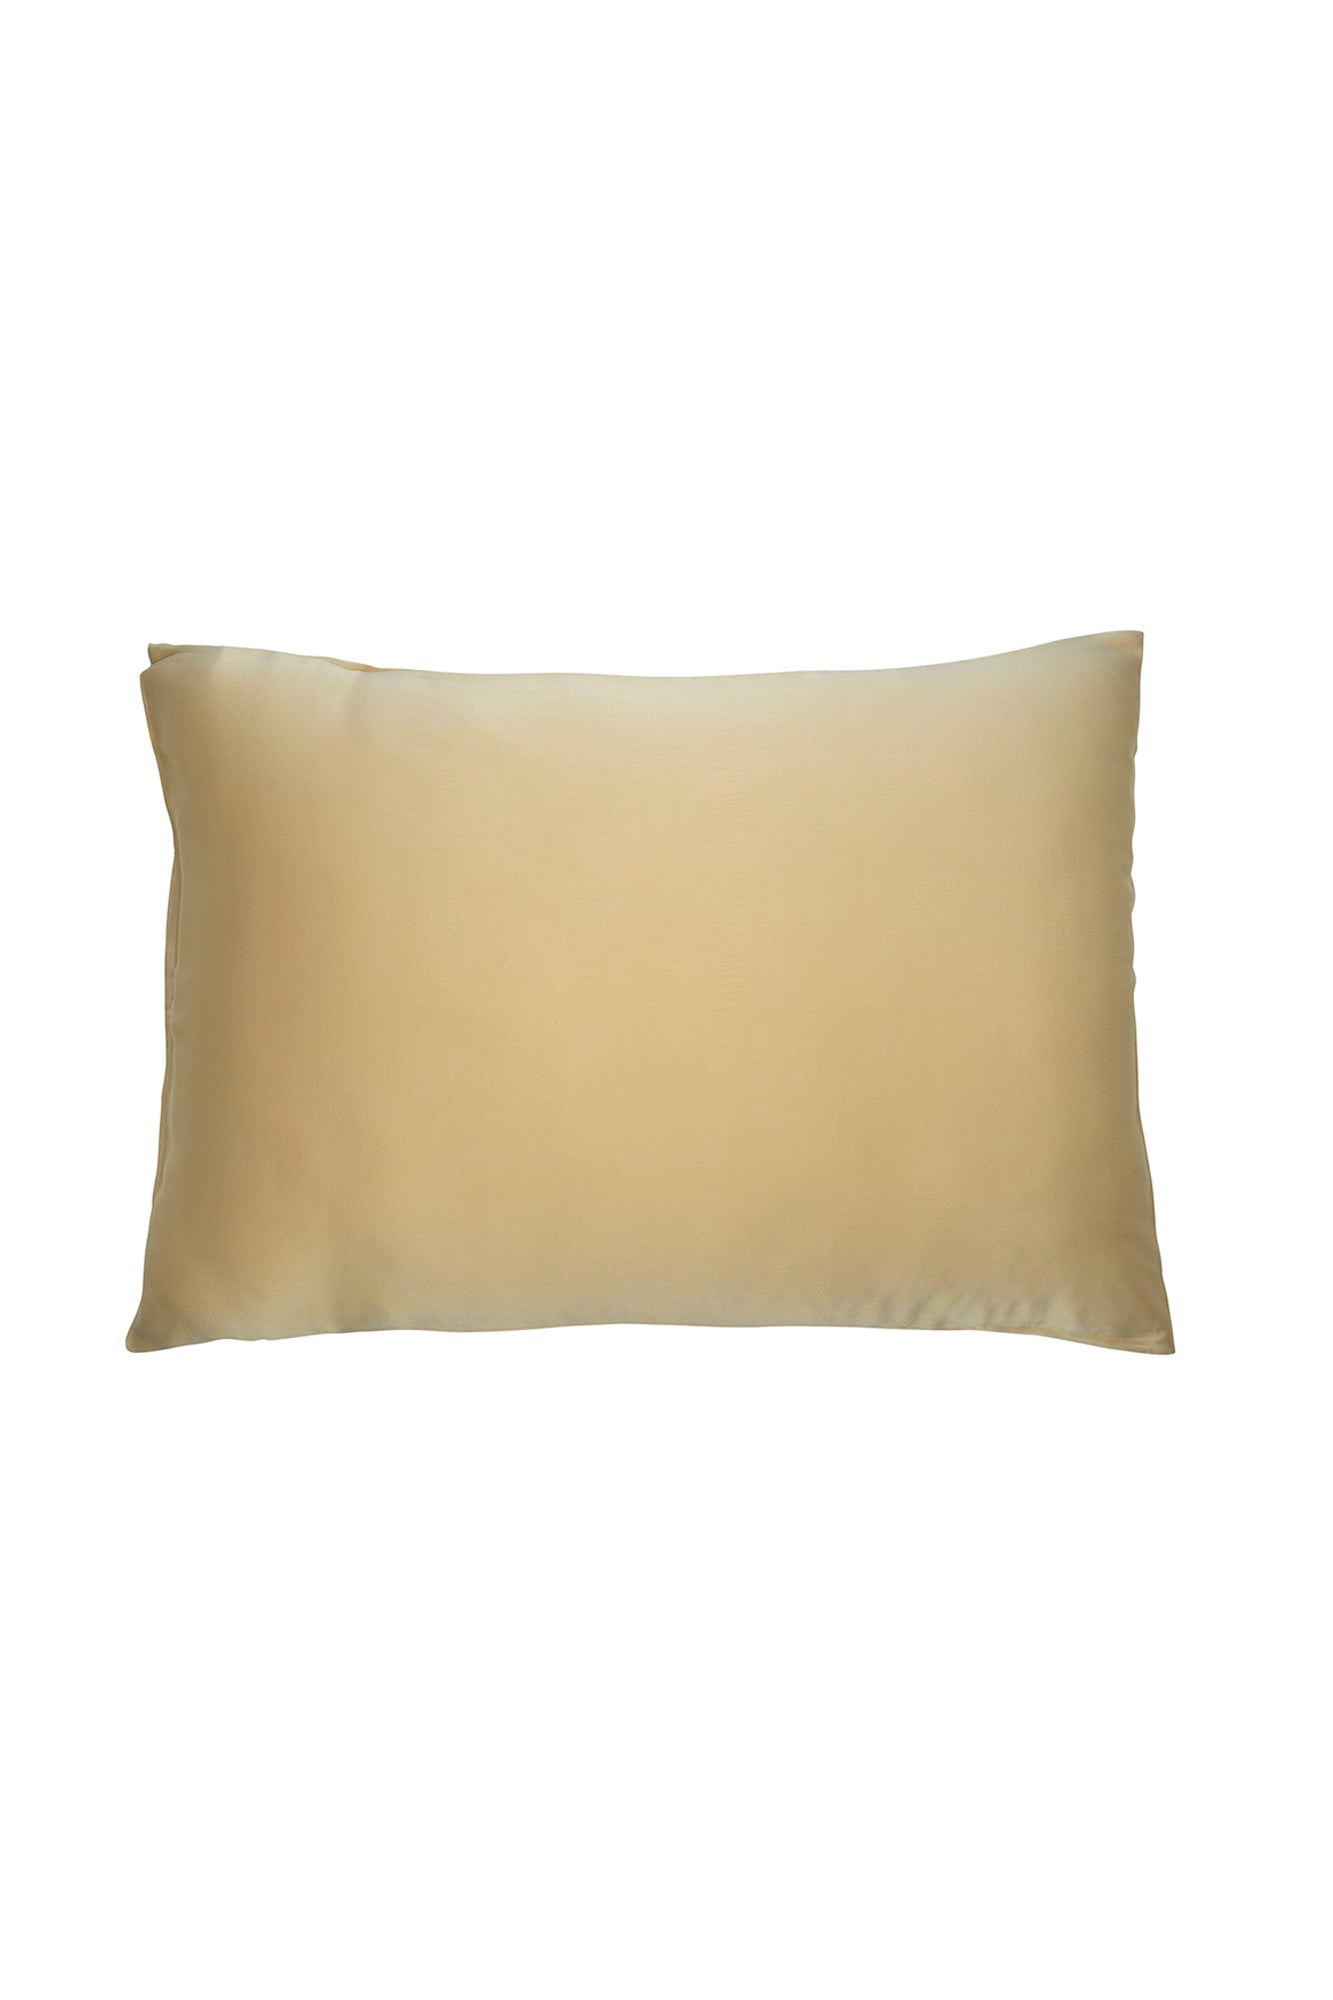 Plant Dyed Silk Pillowcase